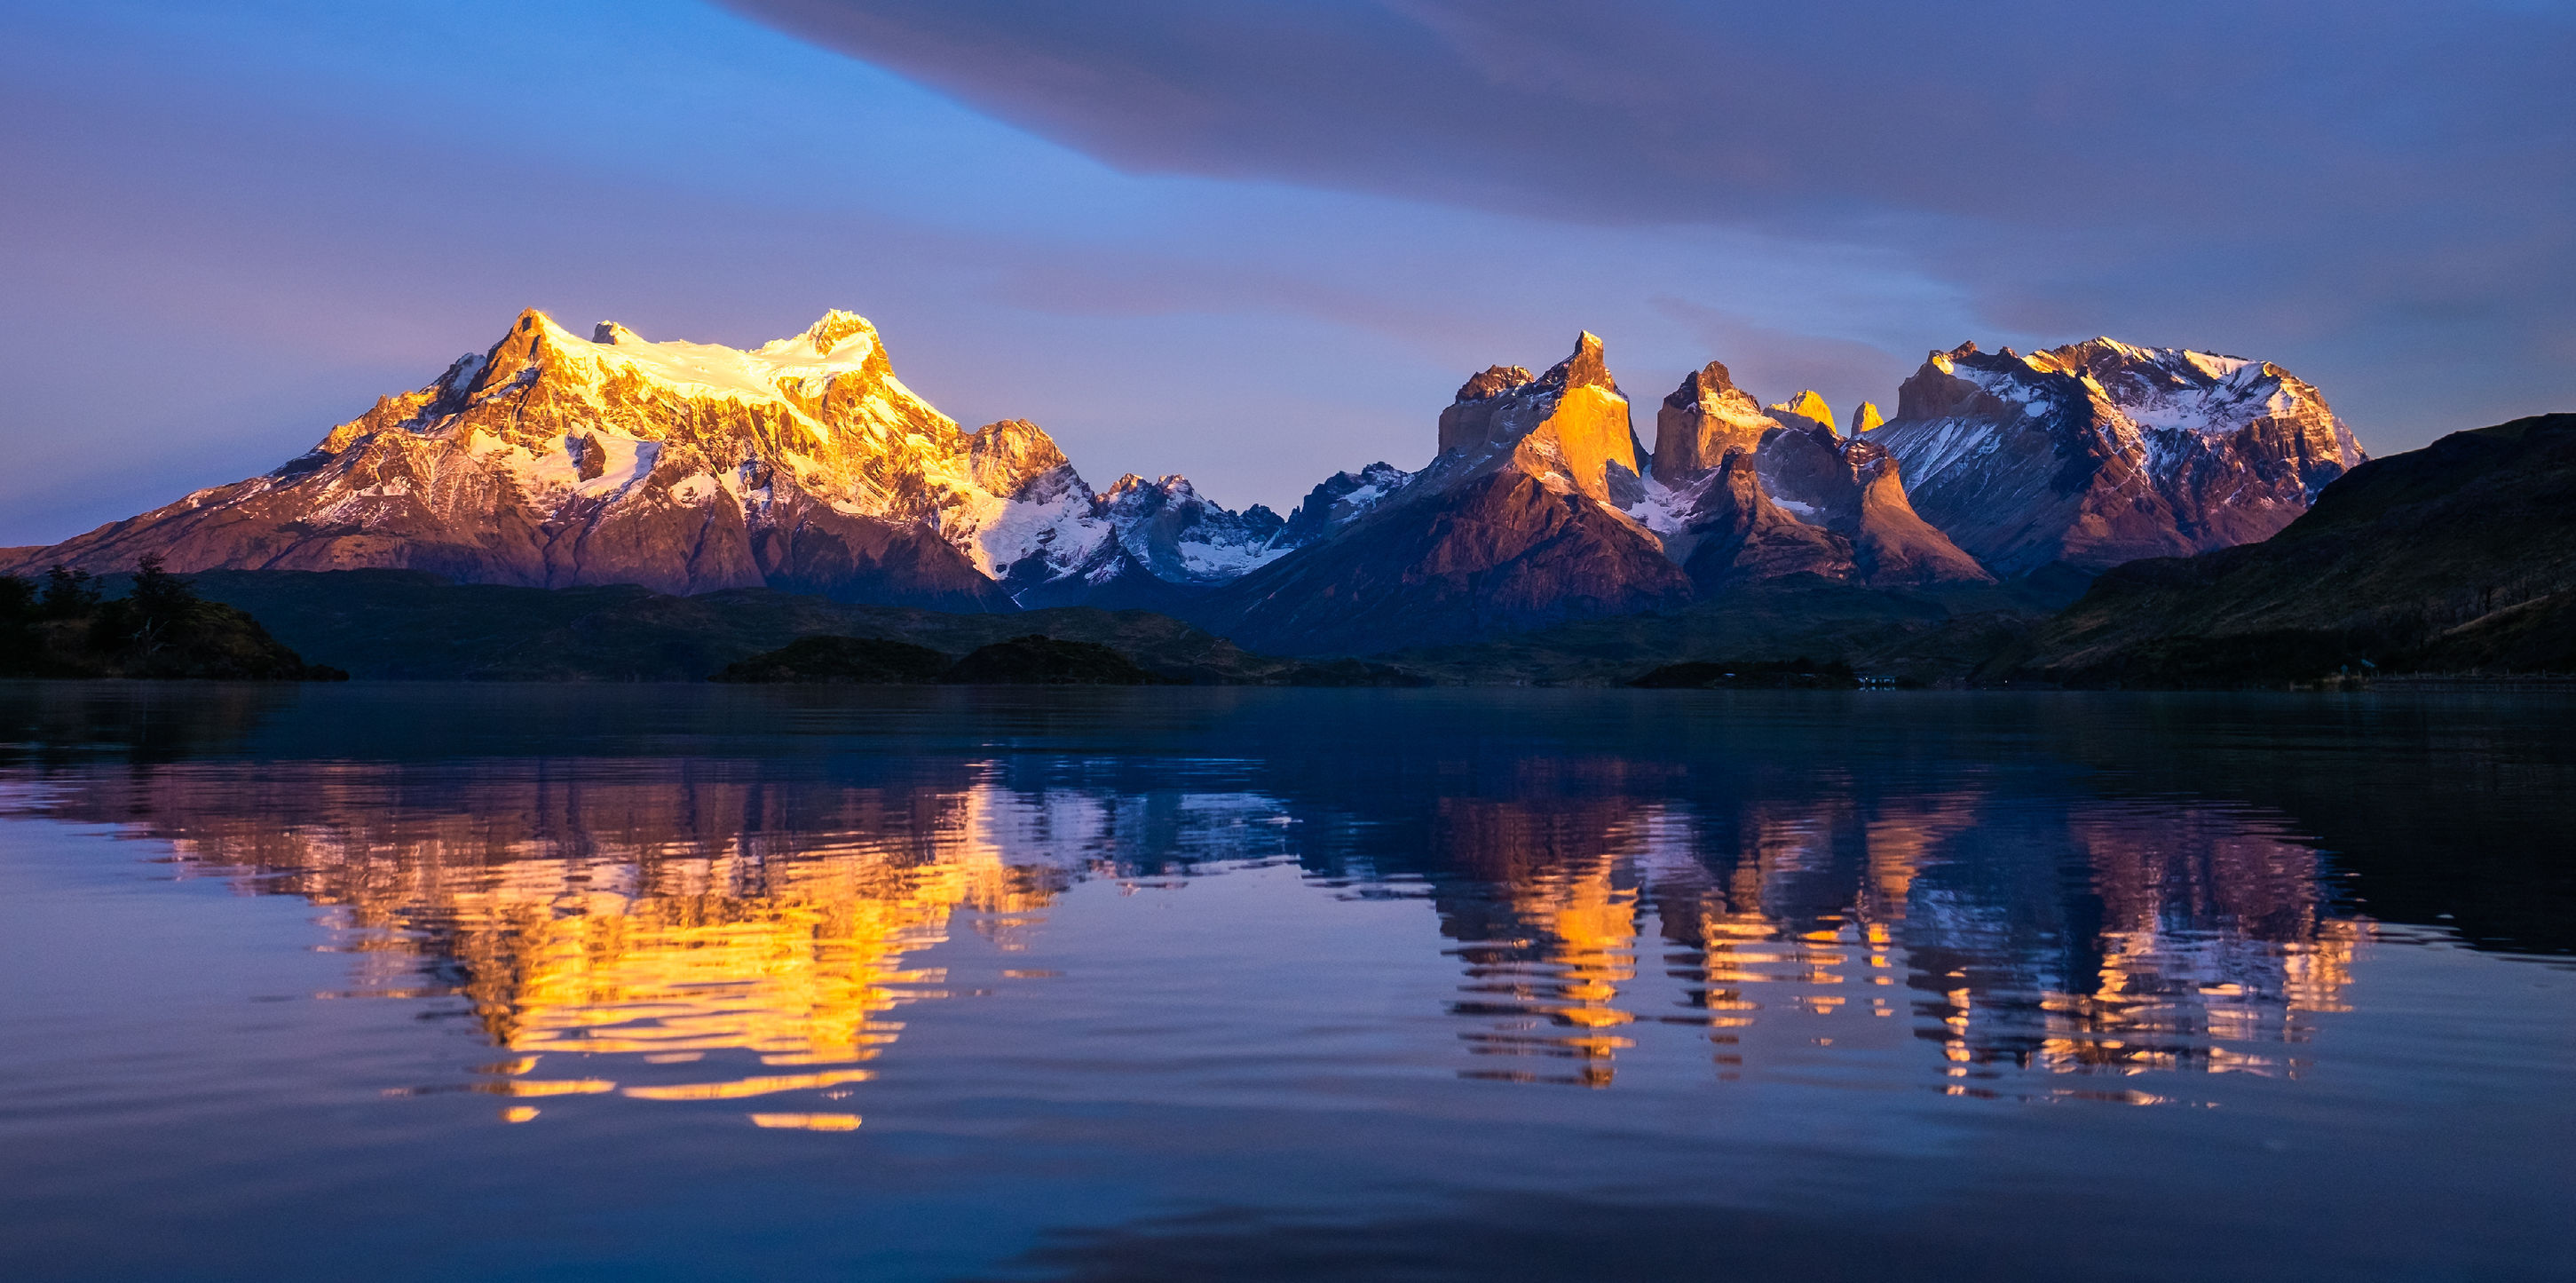 torres-del-paine-mountains